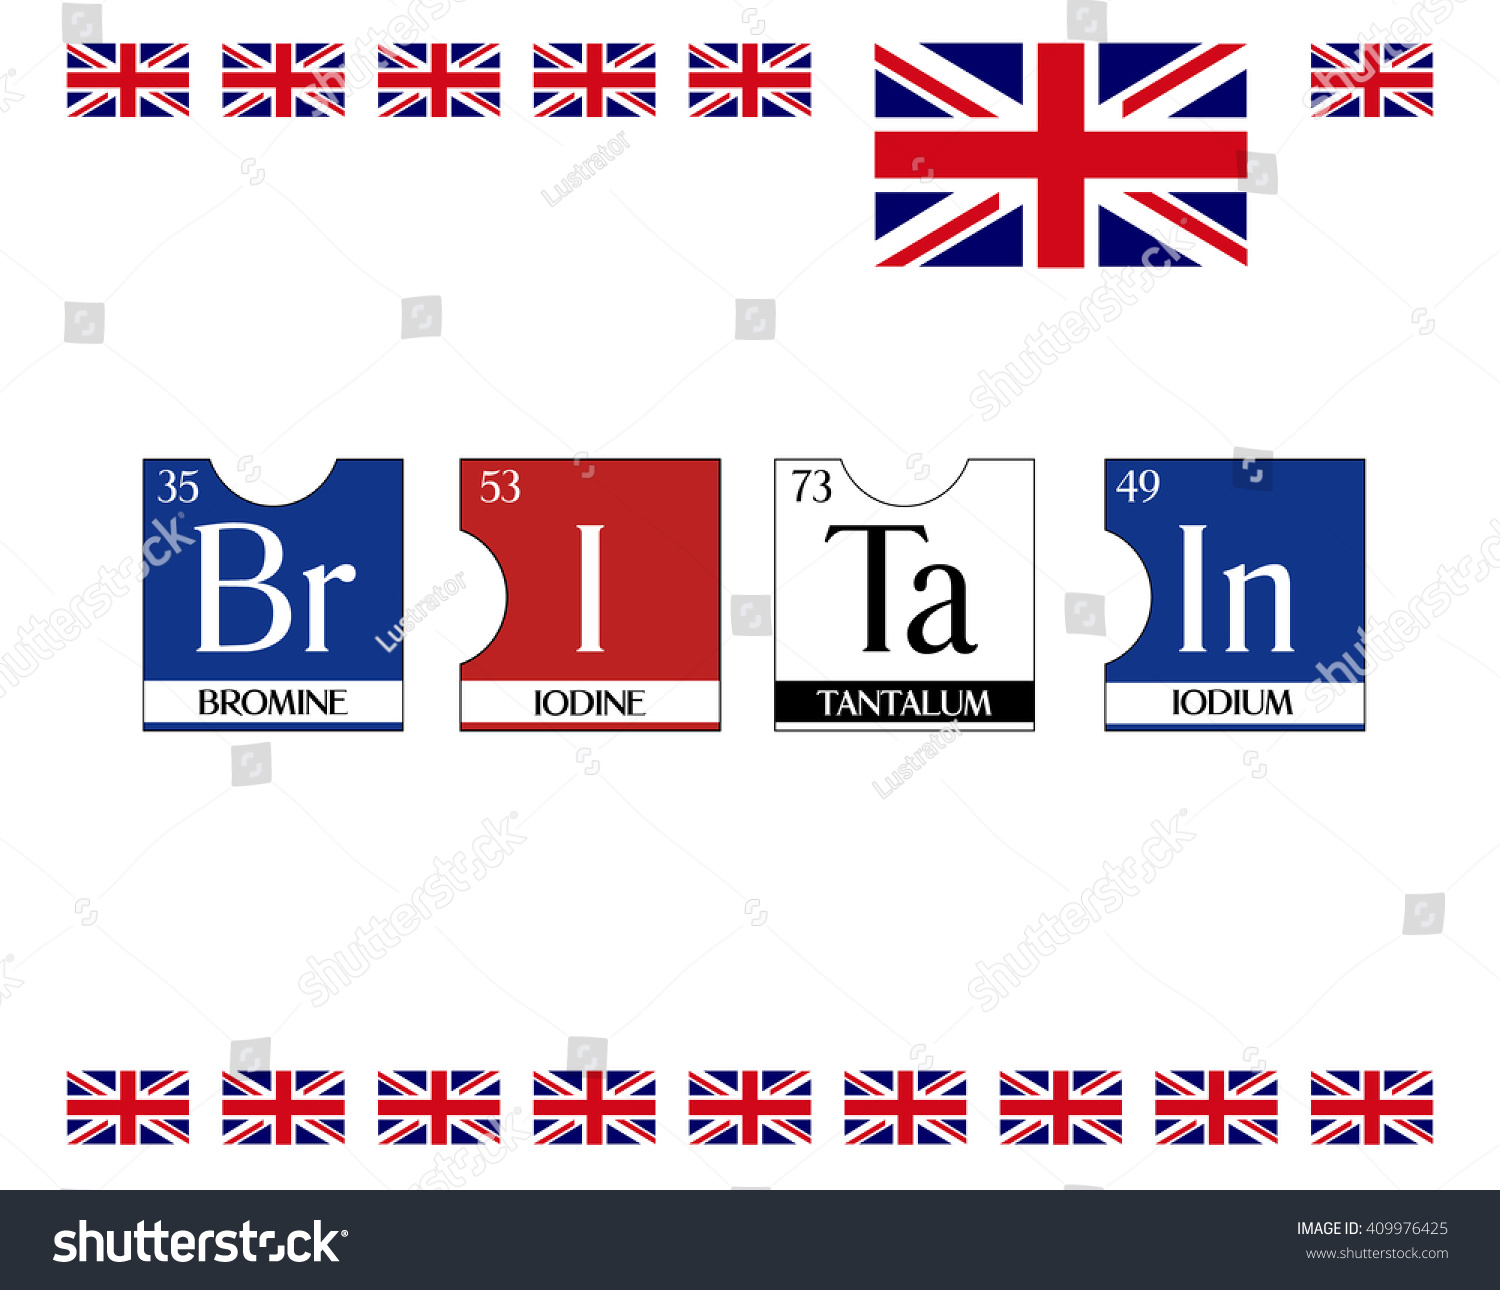 Britain text poster periodic table elements stock vector 409976425 britain text poster from periodic table elements illustration vector cool t shirt print gamestrikefo Choice Image